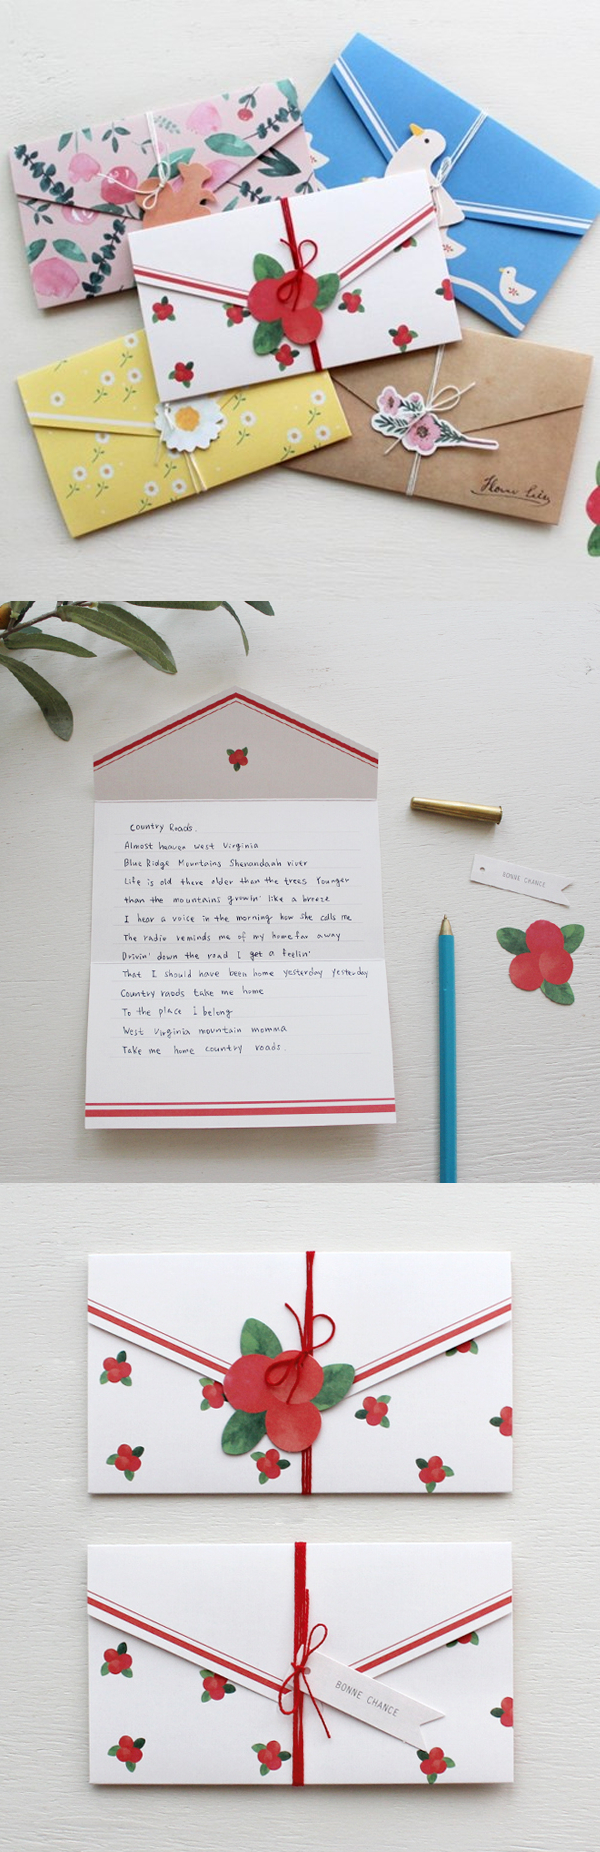 The Natural Pattern Envelope Card Makes Letter Writing Easier Than